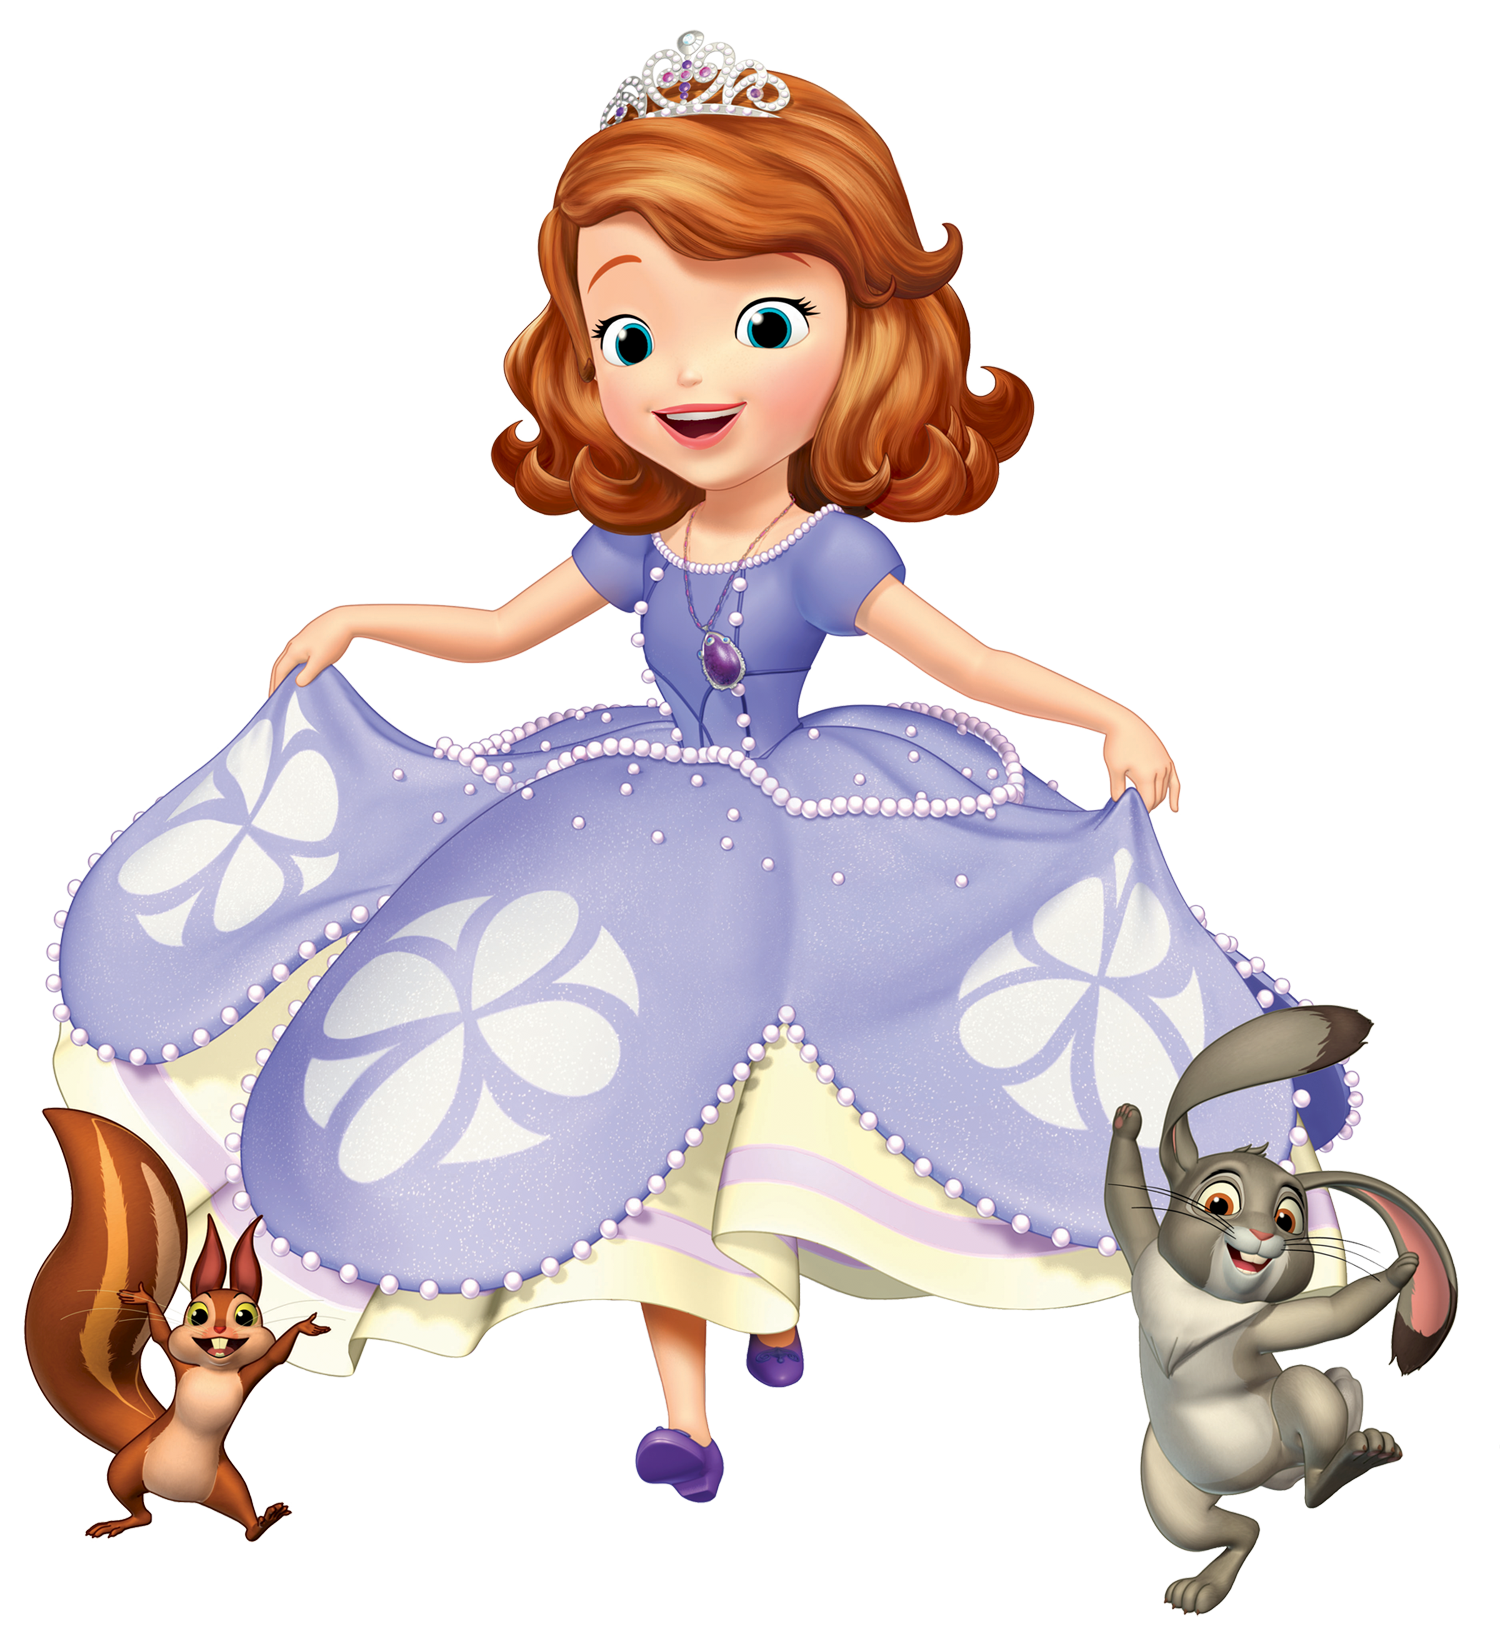 Clipart for u: sofia the first